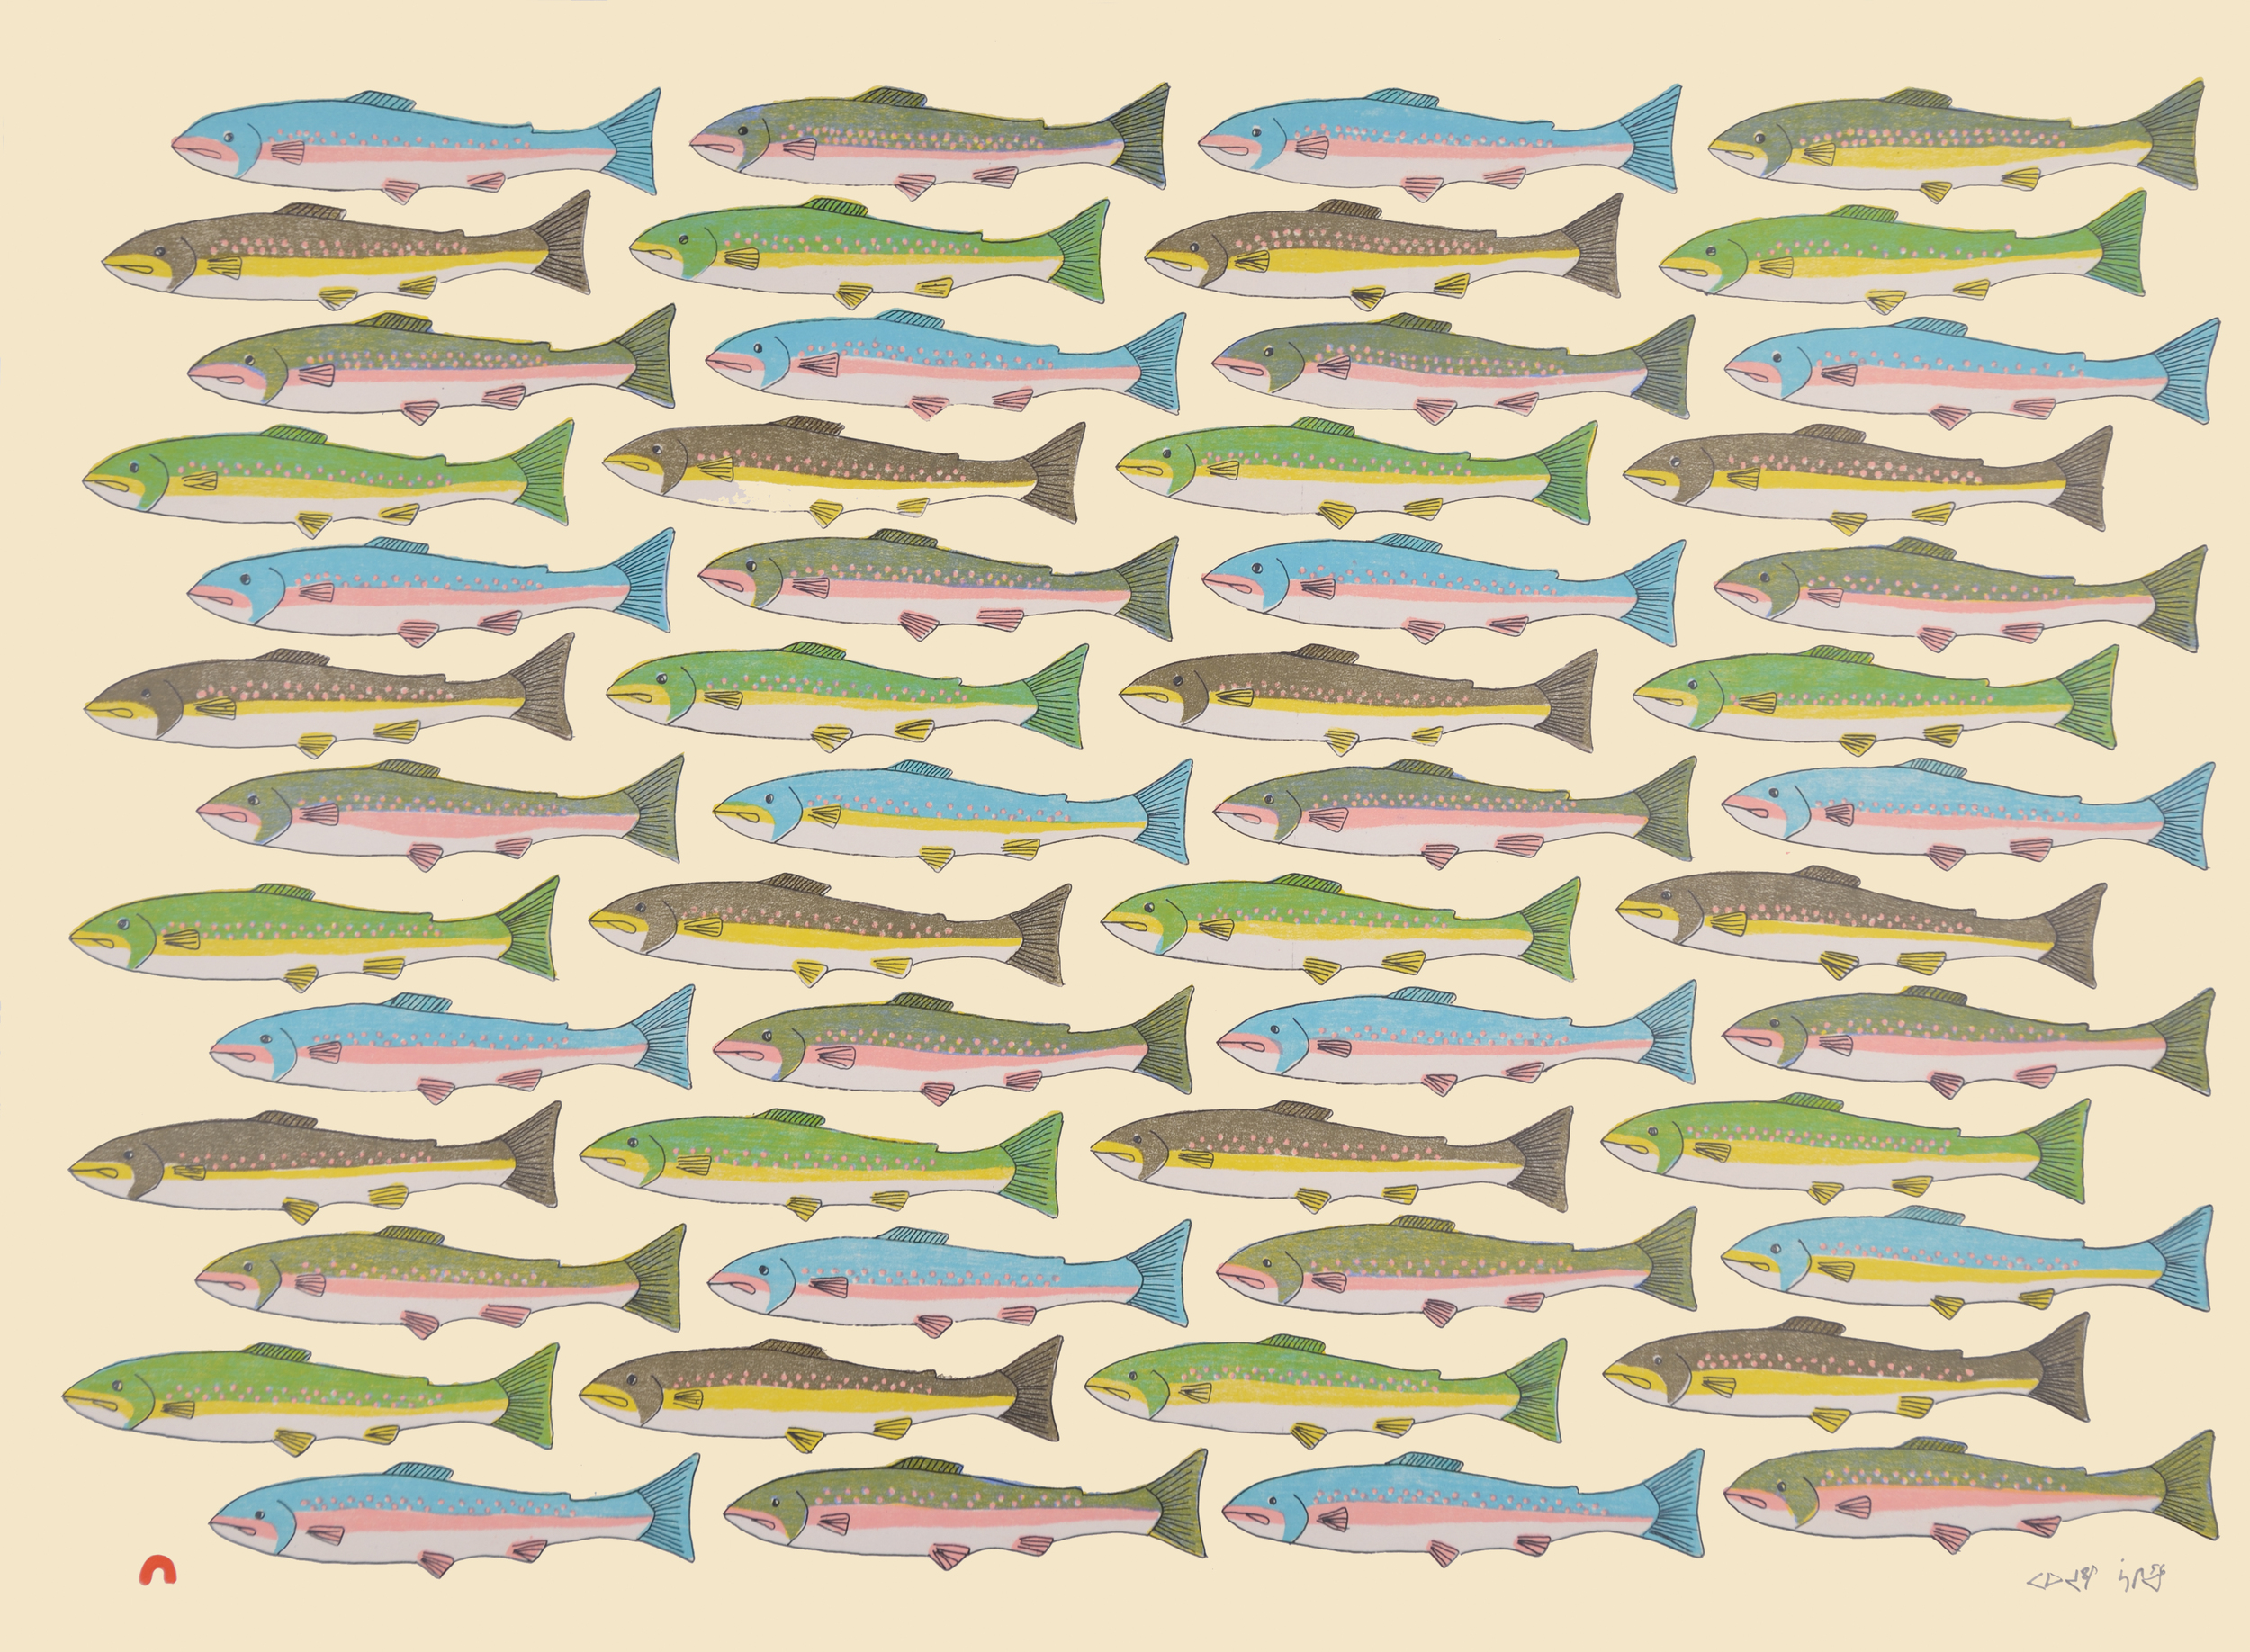 PAUOJOUNGIE SAGGIAK  16-13  Counting Char   Lithograph  Paper: BFK Rives Cream  Printer: Niveaksie Quvianaqtuliaq  56 x 76.5 cm  $ 550